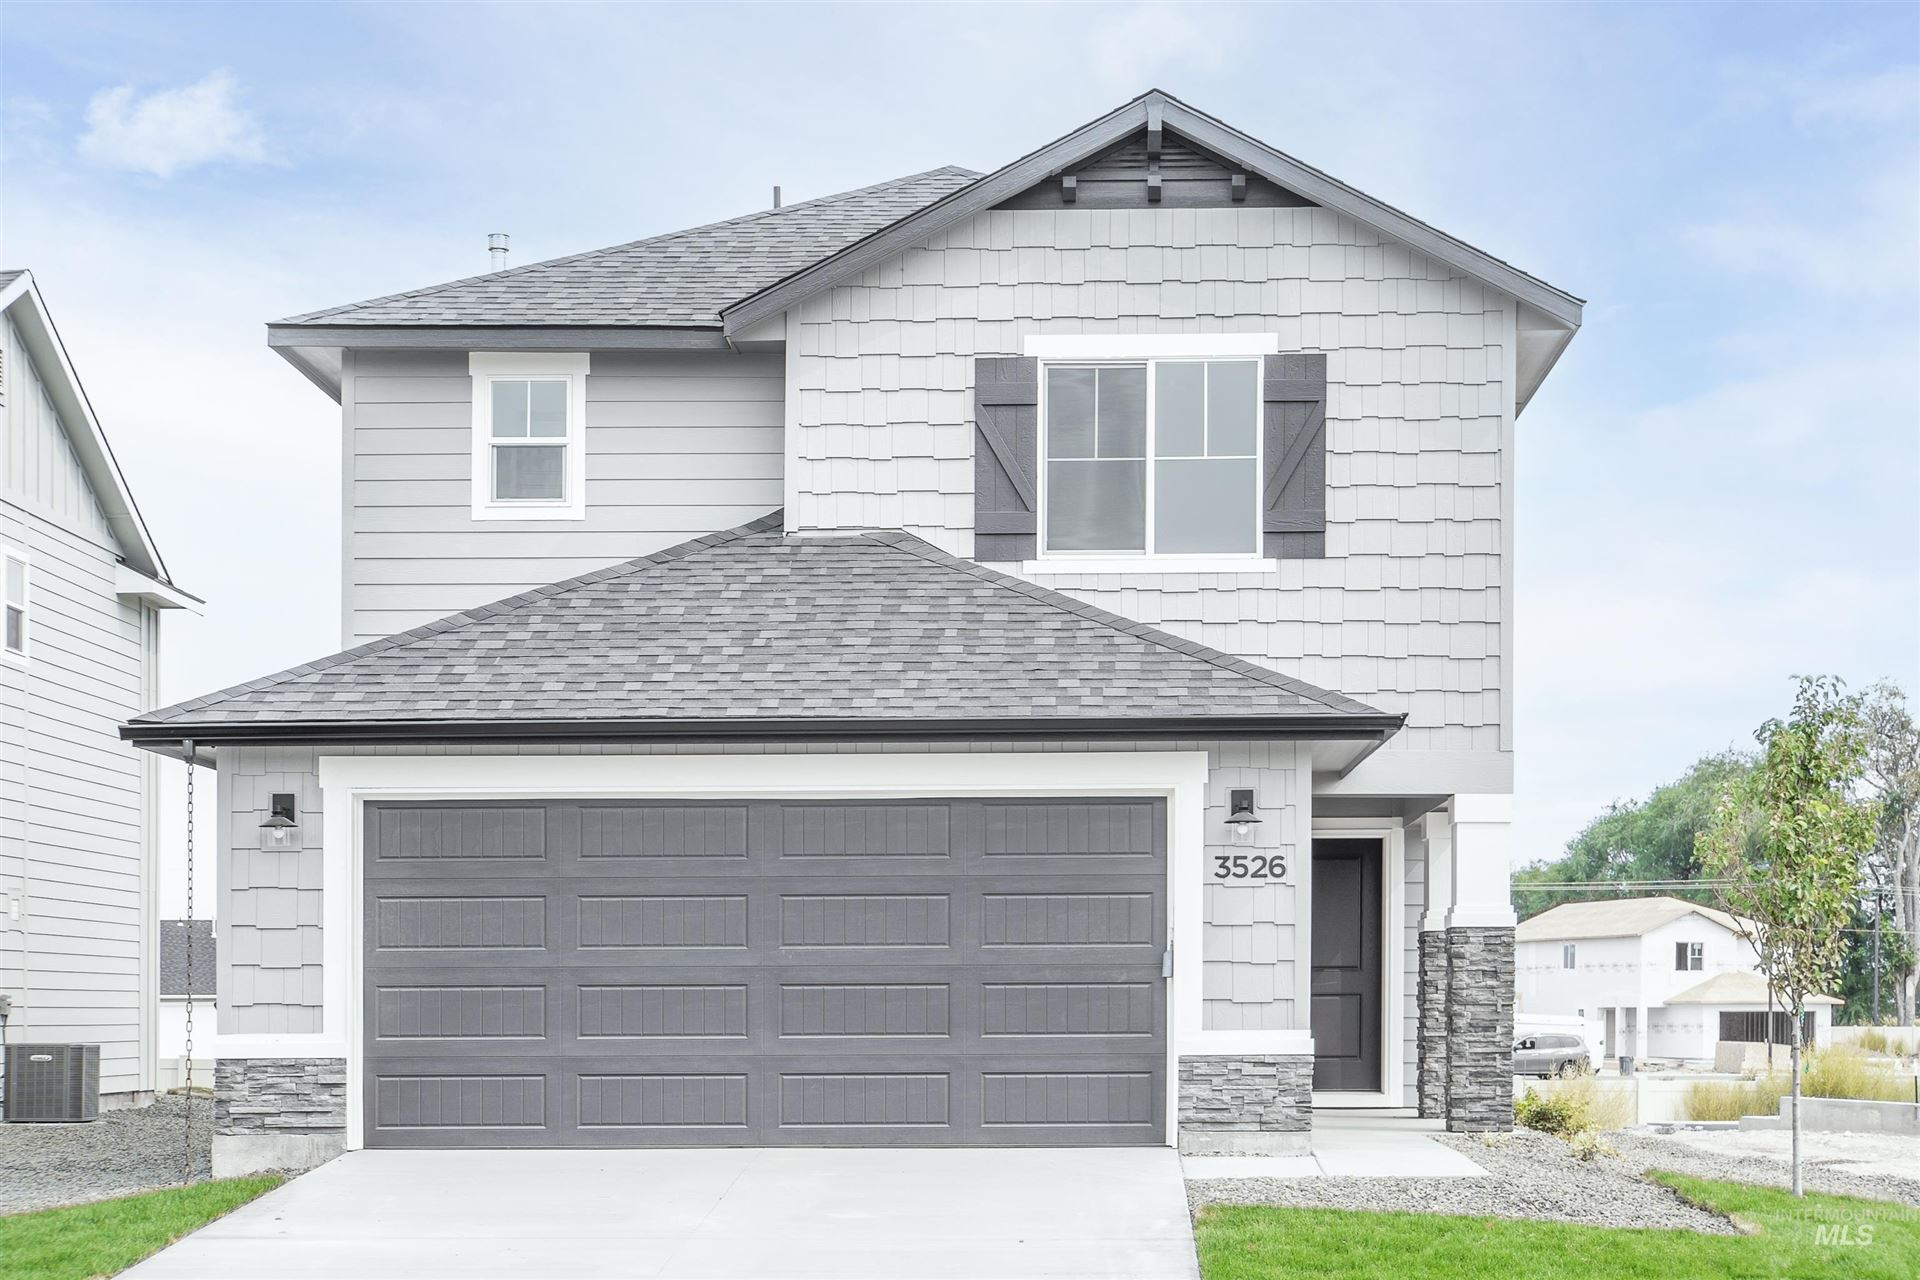 3526 W Remembrance Dr, Meridian, ID 83642 - MLS#: 98812999